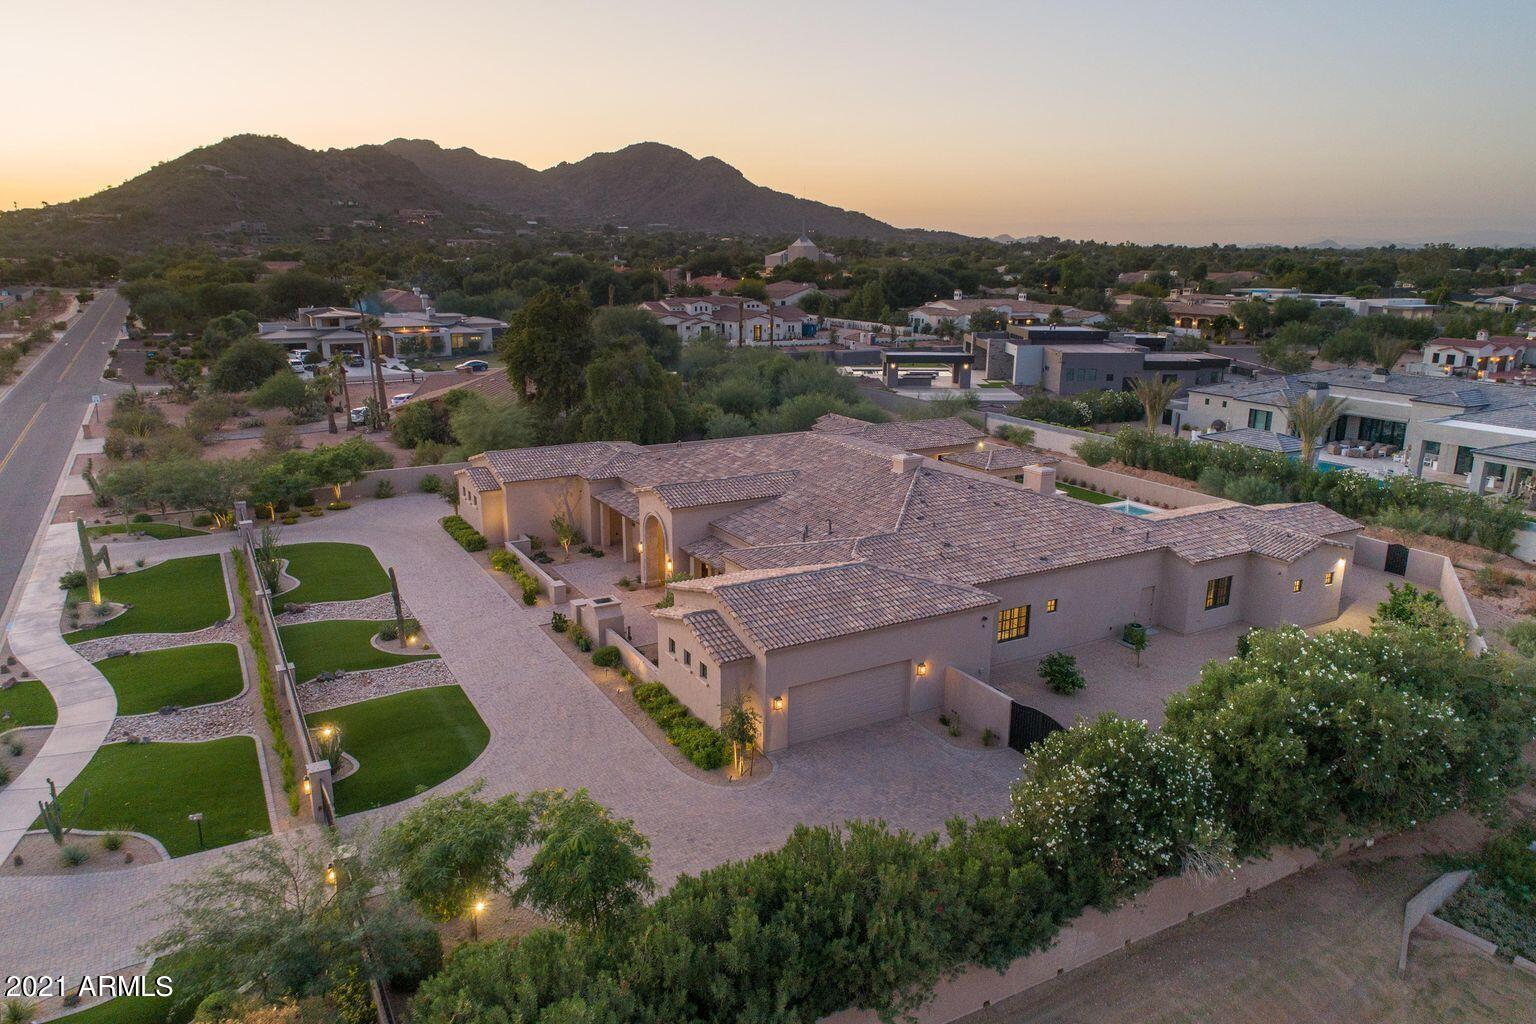 6940 E INDIAN BEND Road, Paradise Valley, AZ 85253, 7 Bedrooms Bedrooms, ,Residential Lease,For Rent,6940 E INDIAN BEND Road,6221643